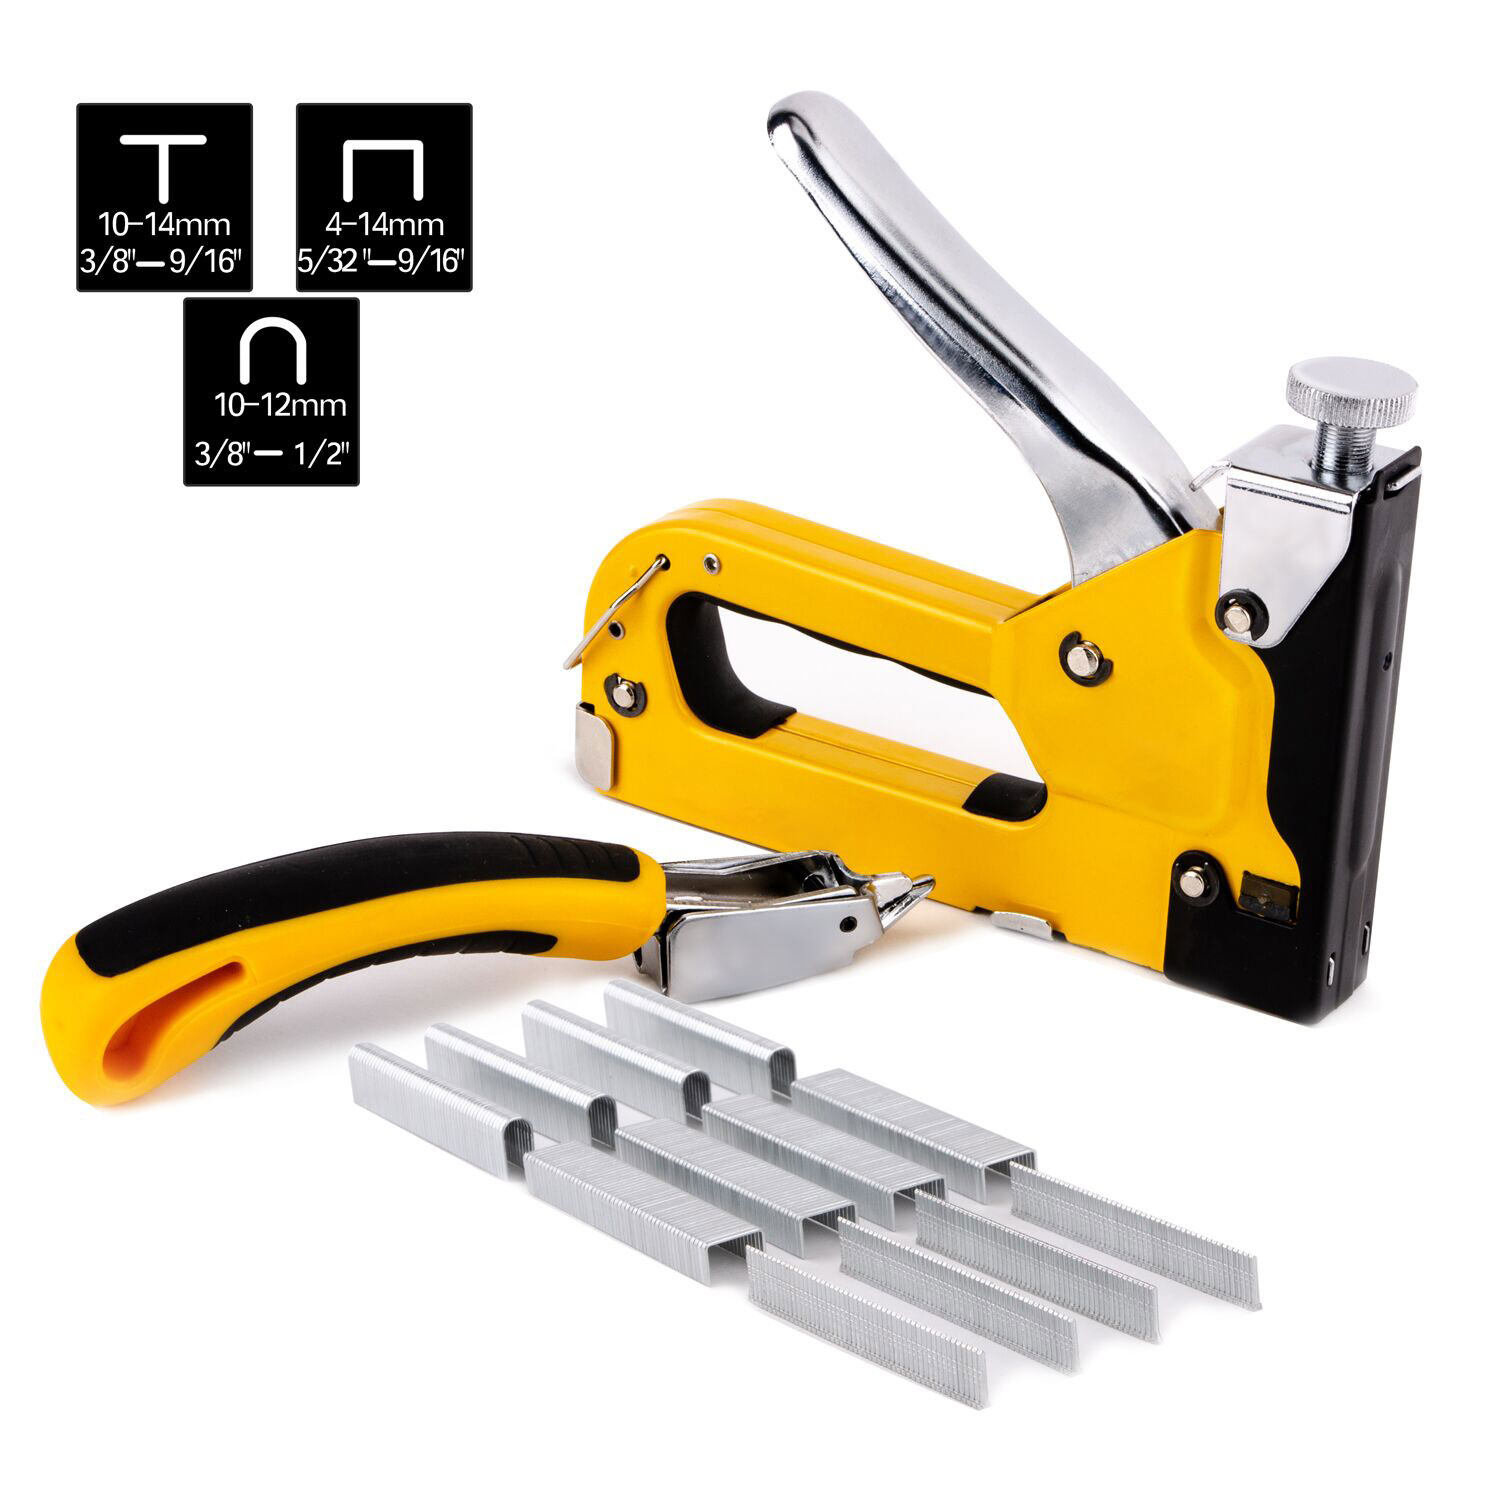 3 IN 1 HEAVY DUTY STEEL STAPLE GUN TACKER UPHOLSTERY STAPLER